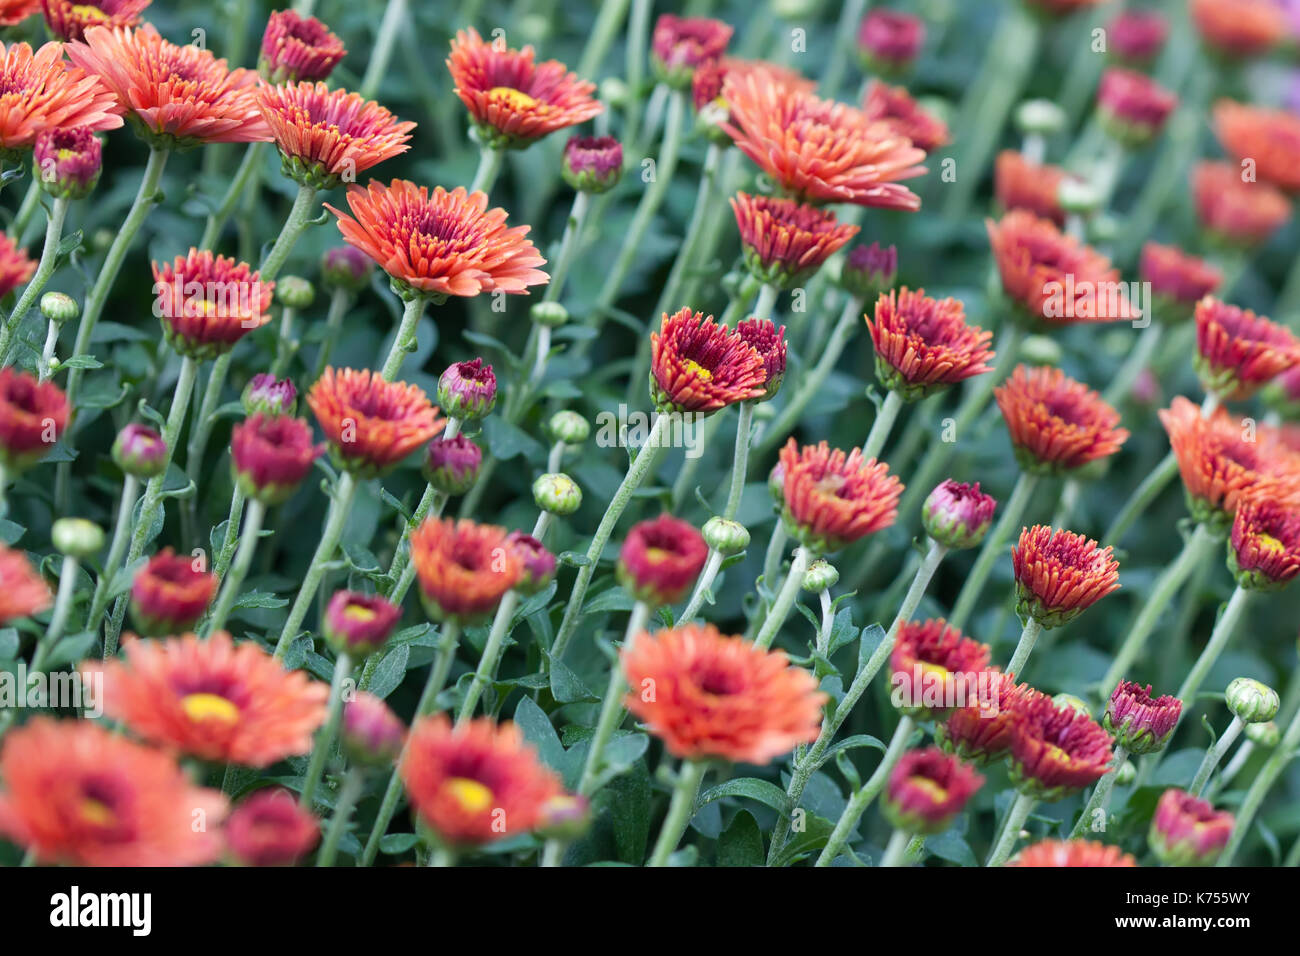 Mums flowers stock photos mums flowers stock images alamy field red chrysanthemums floral background many colorful mums flowers close up photo selective izmirmasajfo Gallery